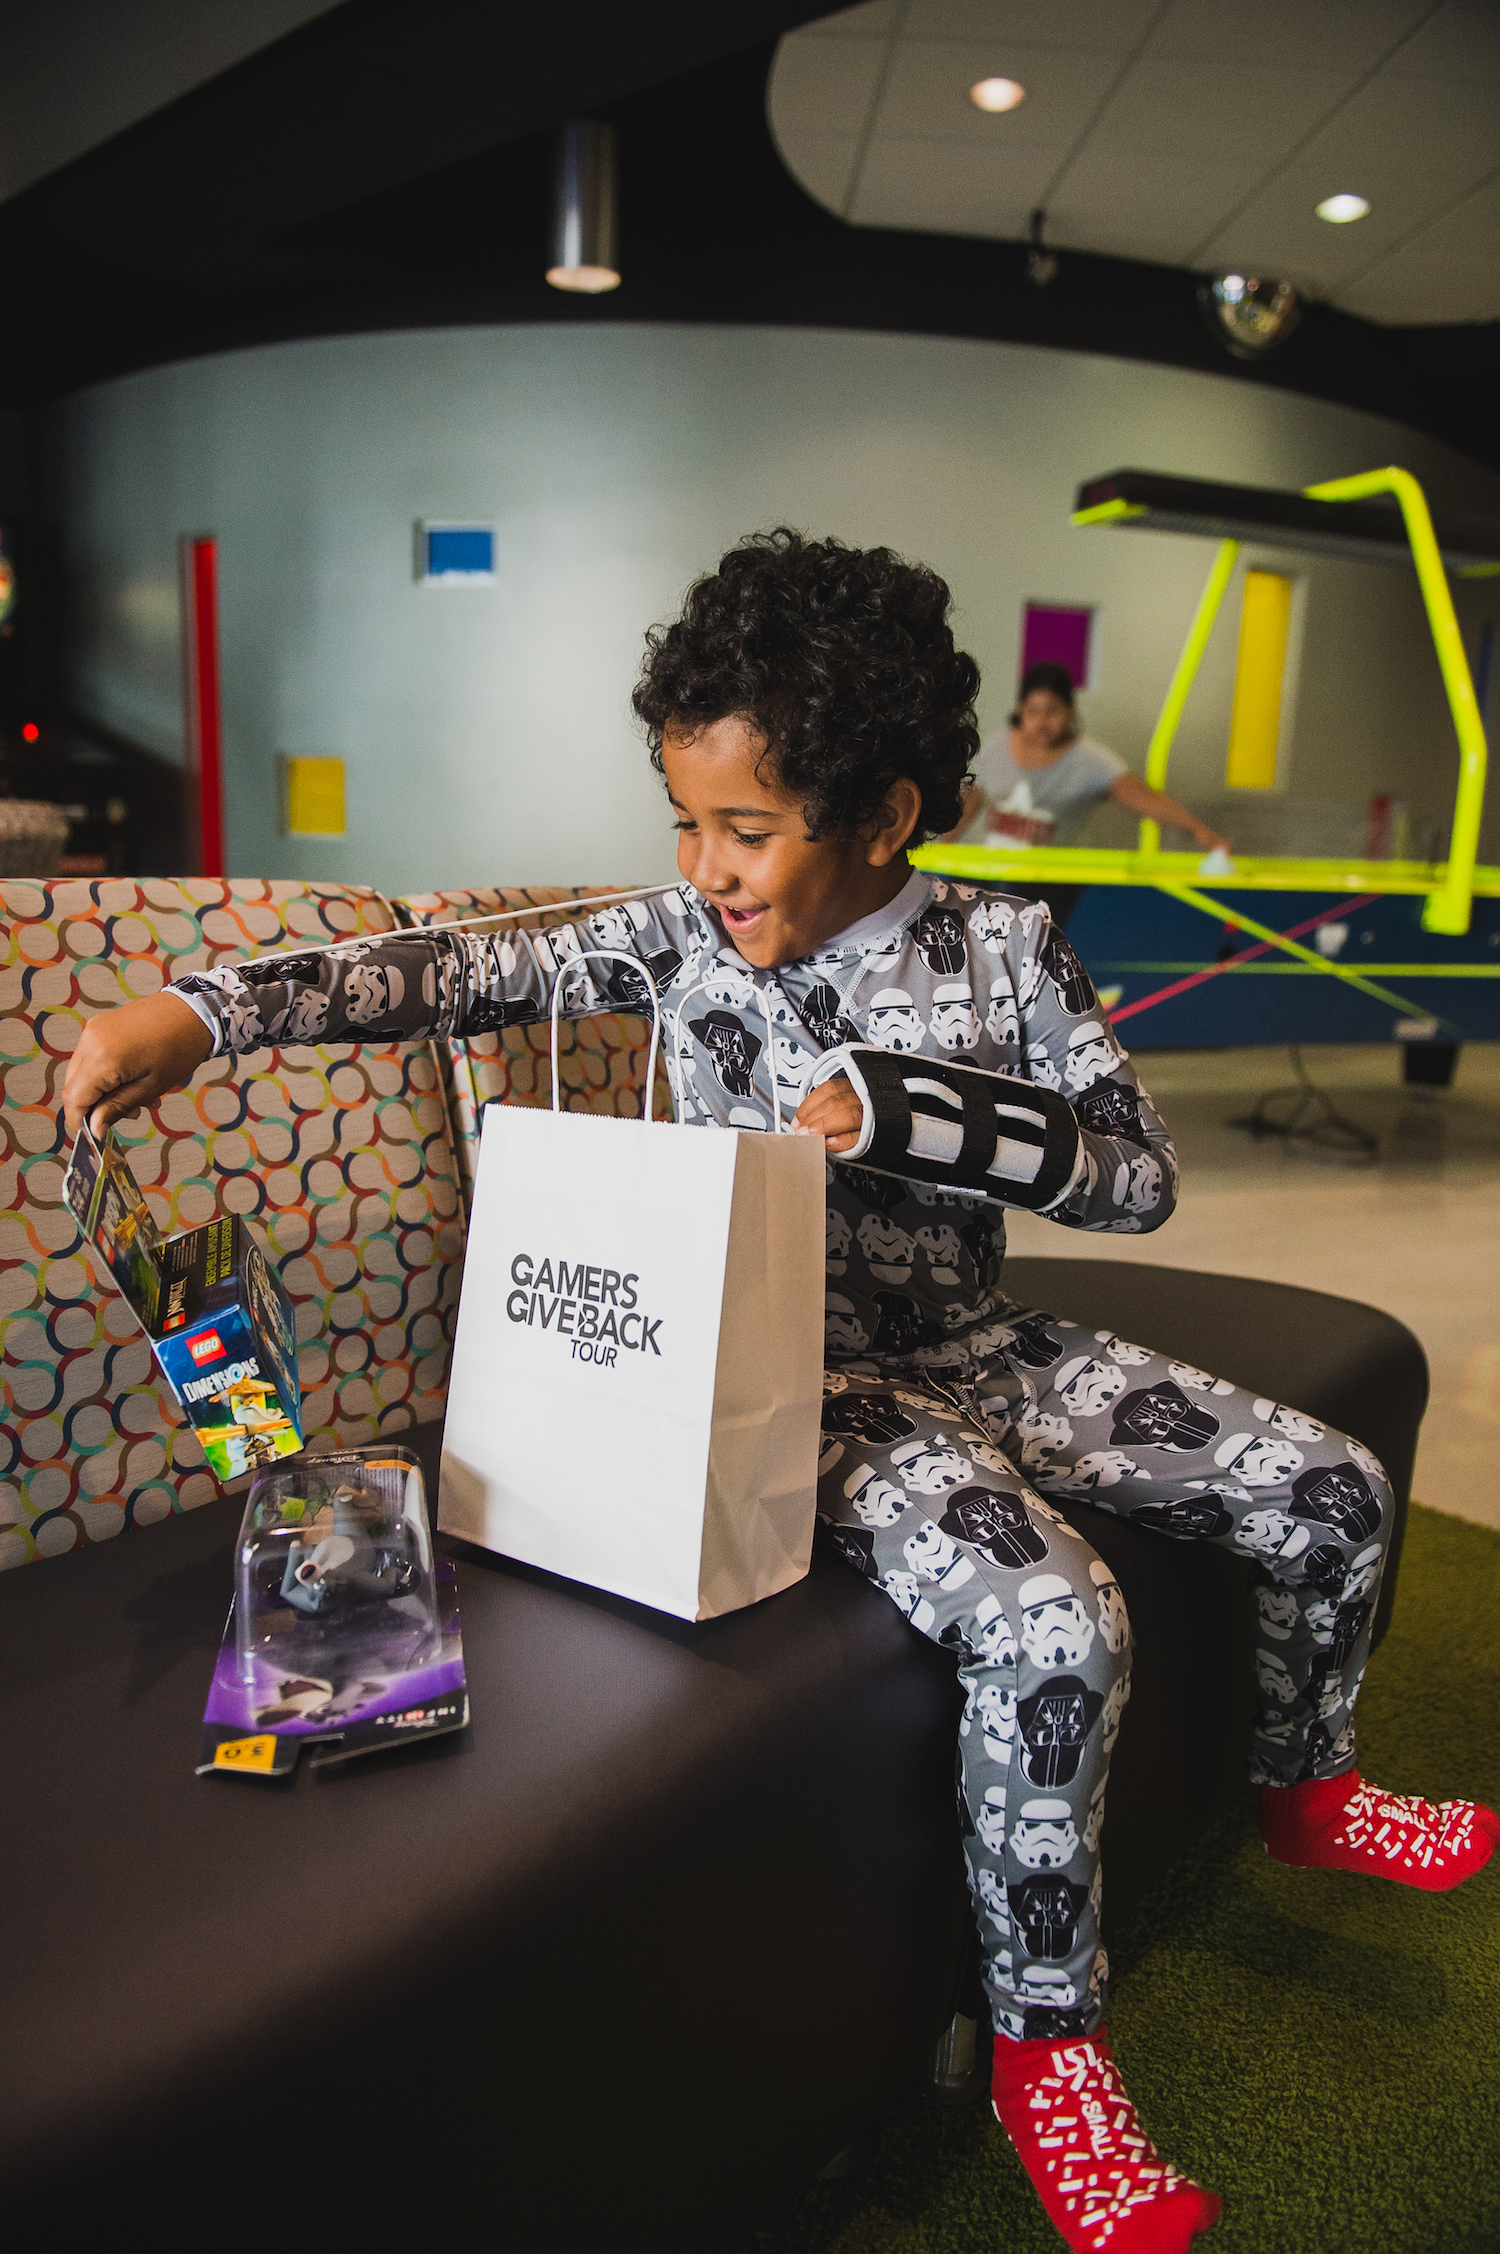 Male Pediatric Patient Excitedly Opens a GameChanger Charity Gift Bag.jpg